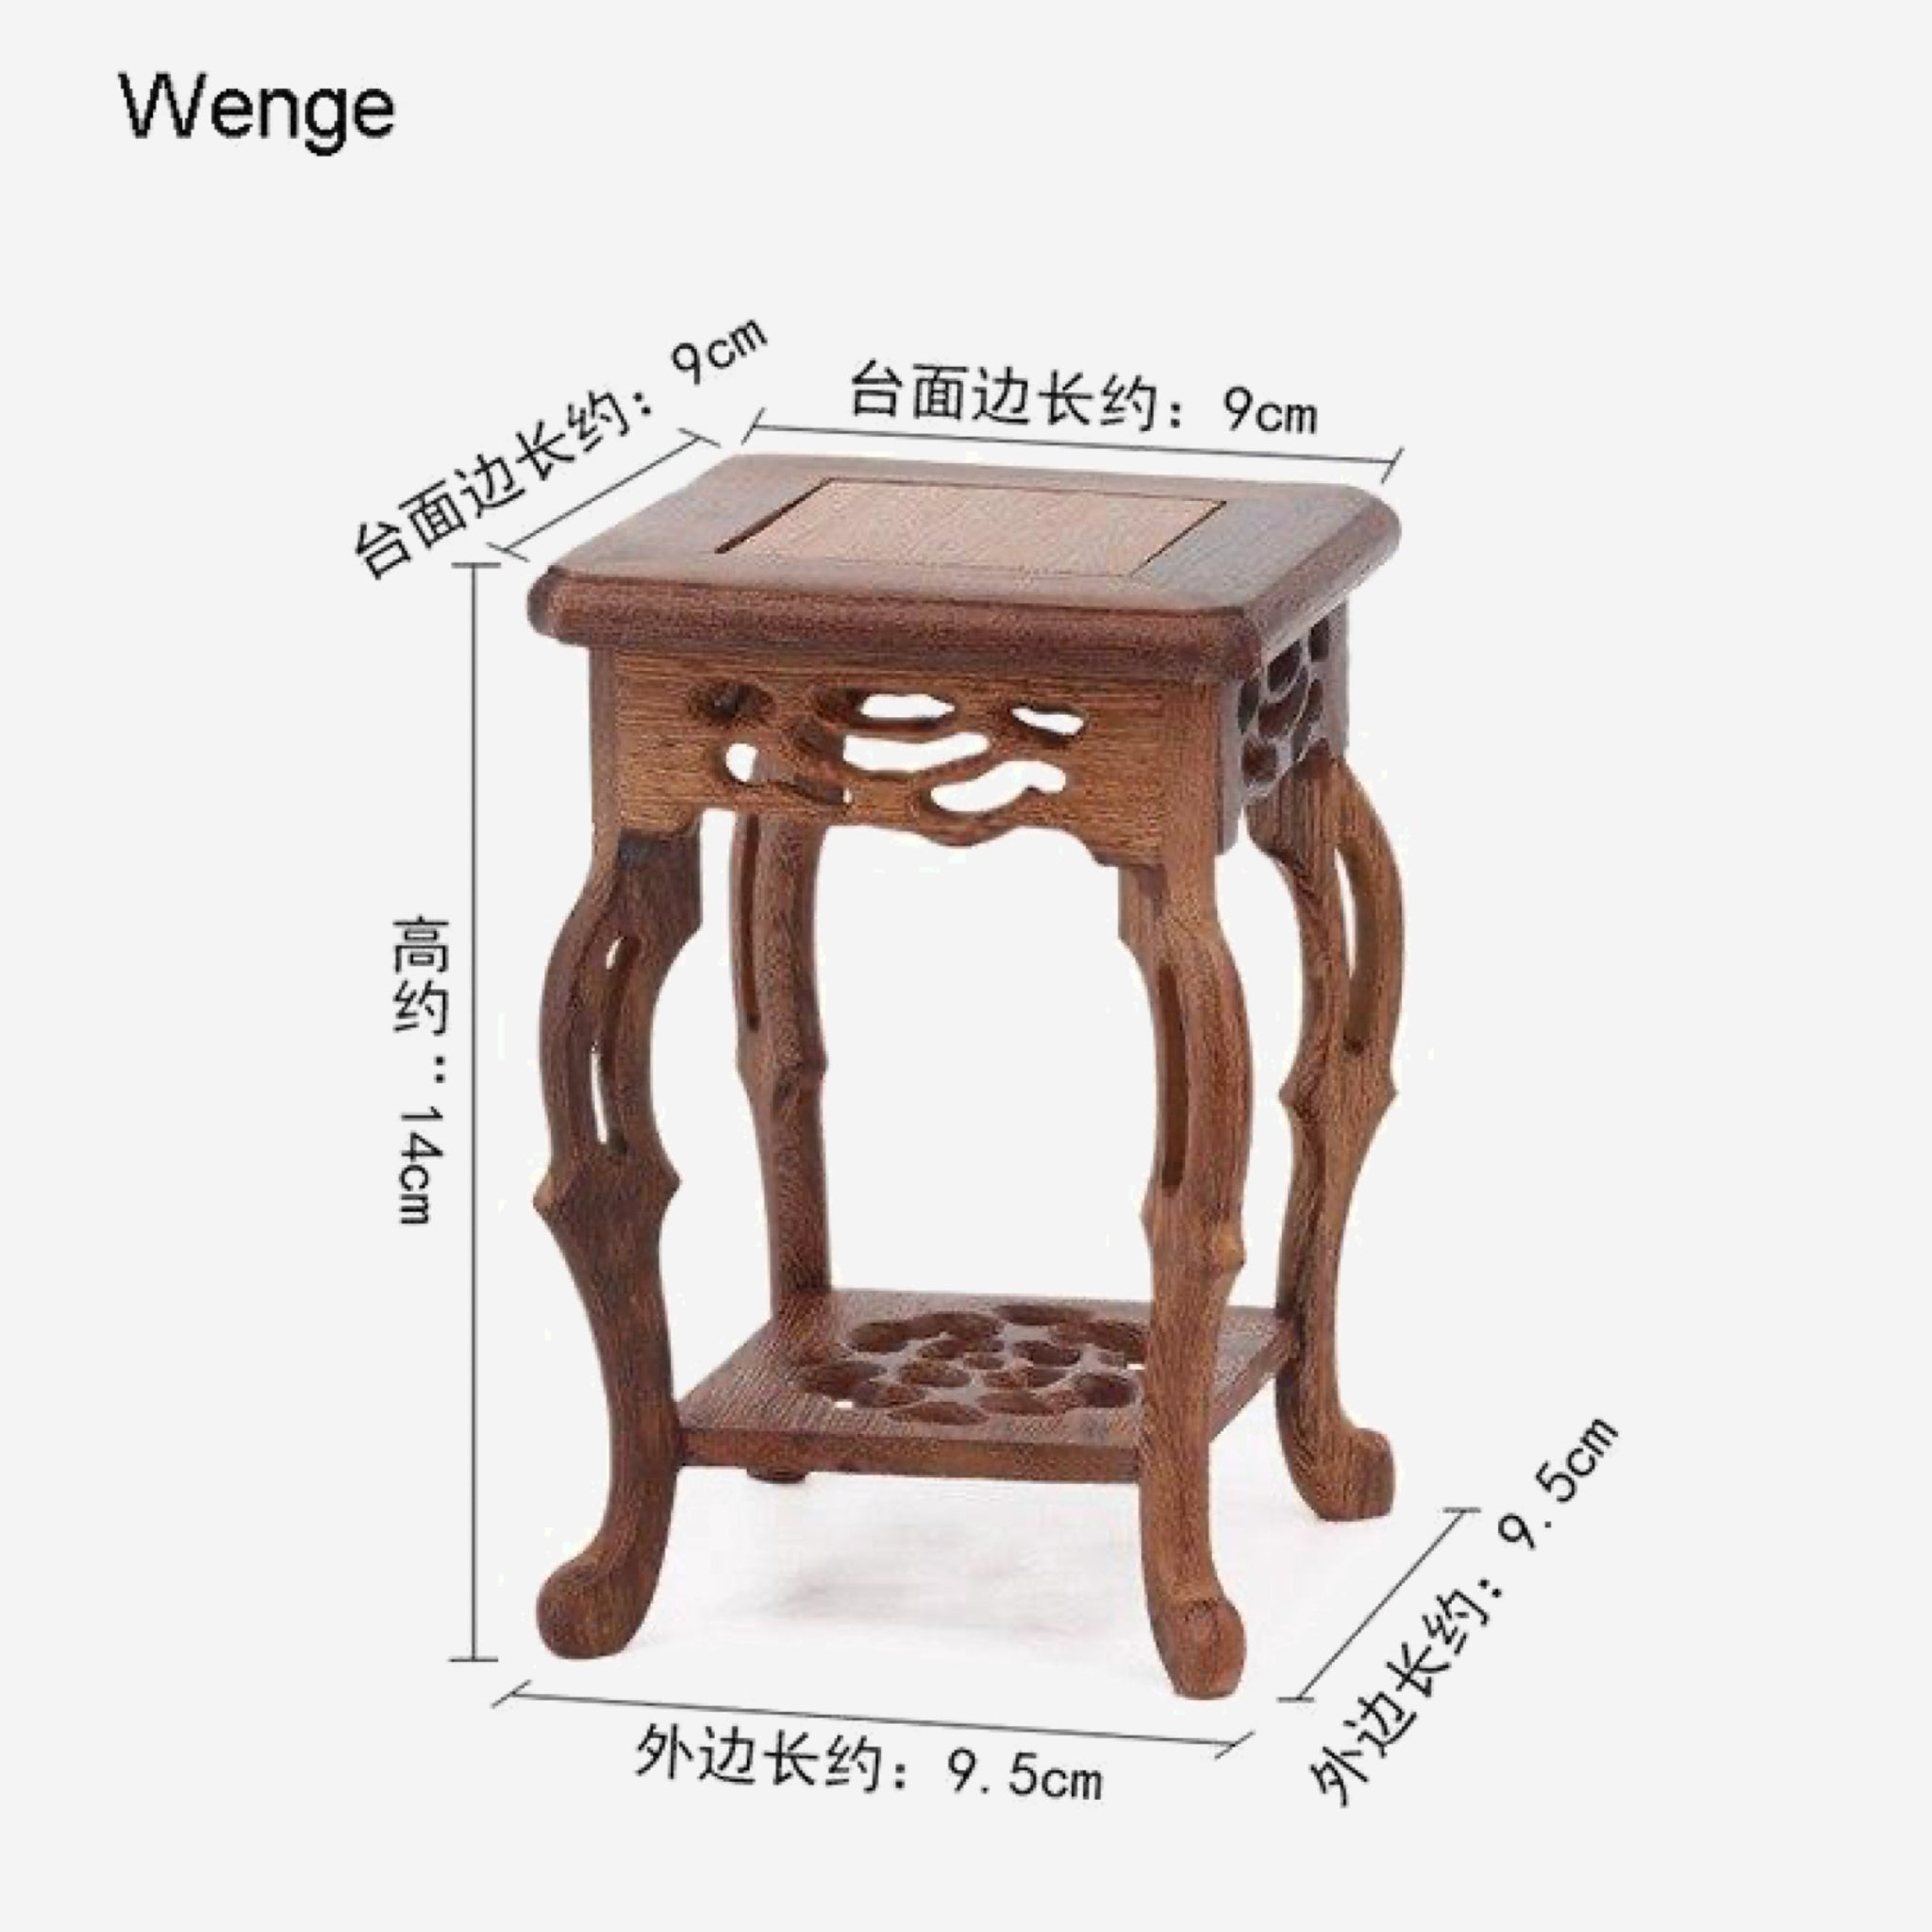 Mahogany Base Table    9cm Diameter Wenge Wood teapot ornaments incense Buddha flowers vase flowerpot rack bases Trend